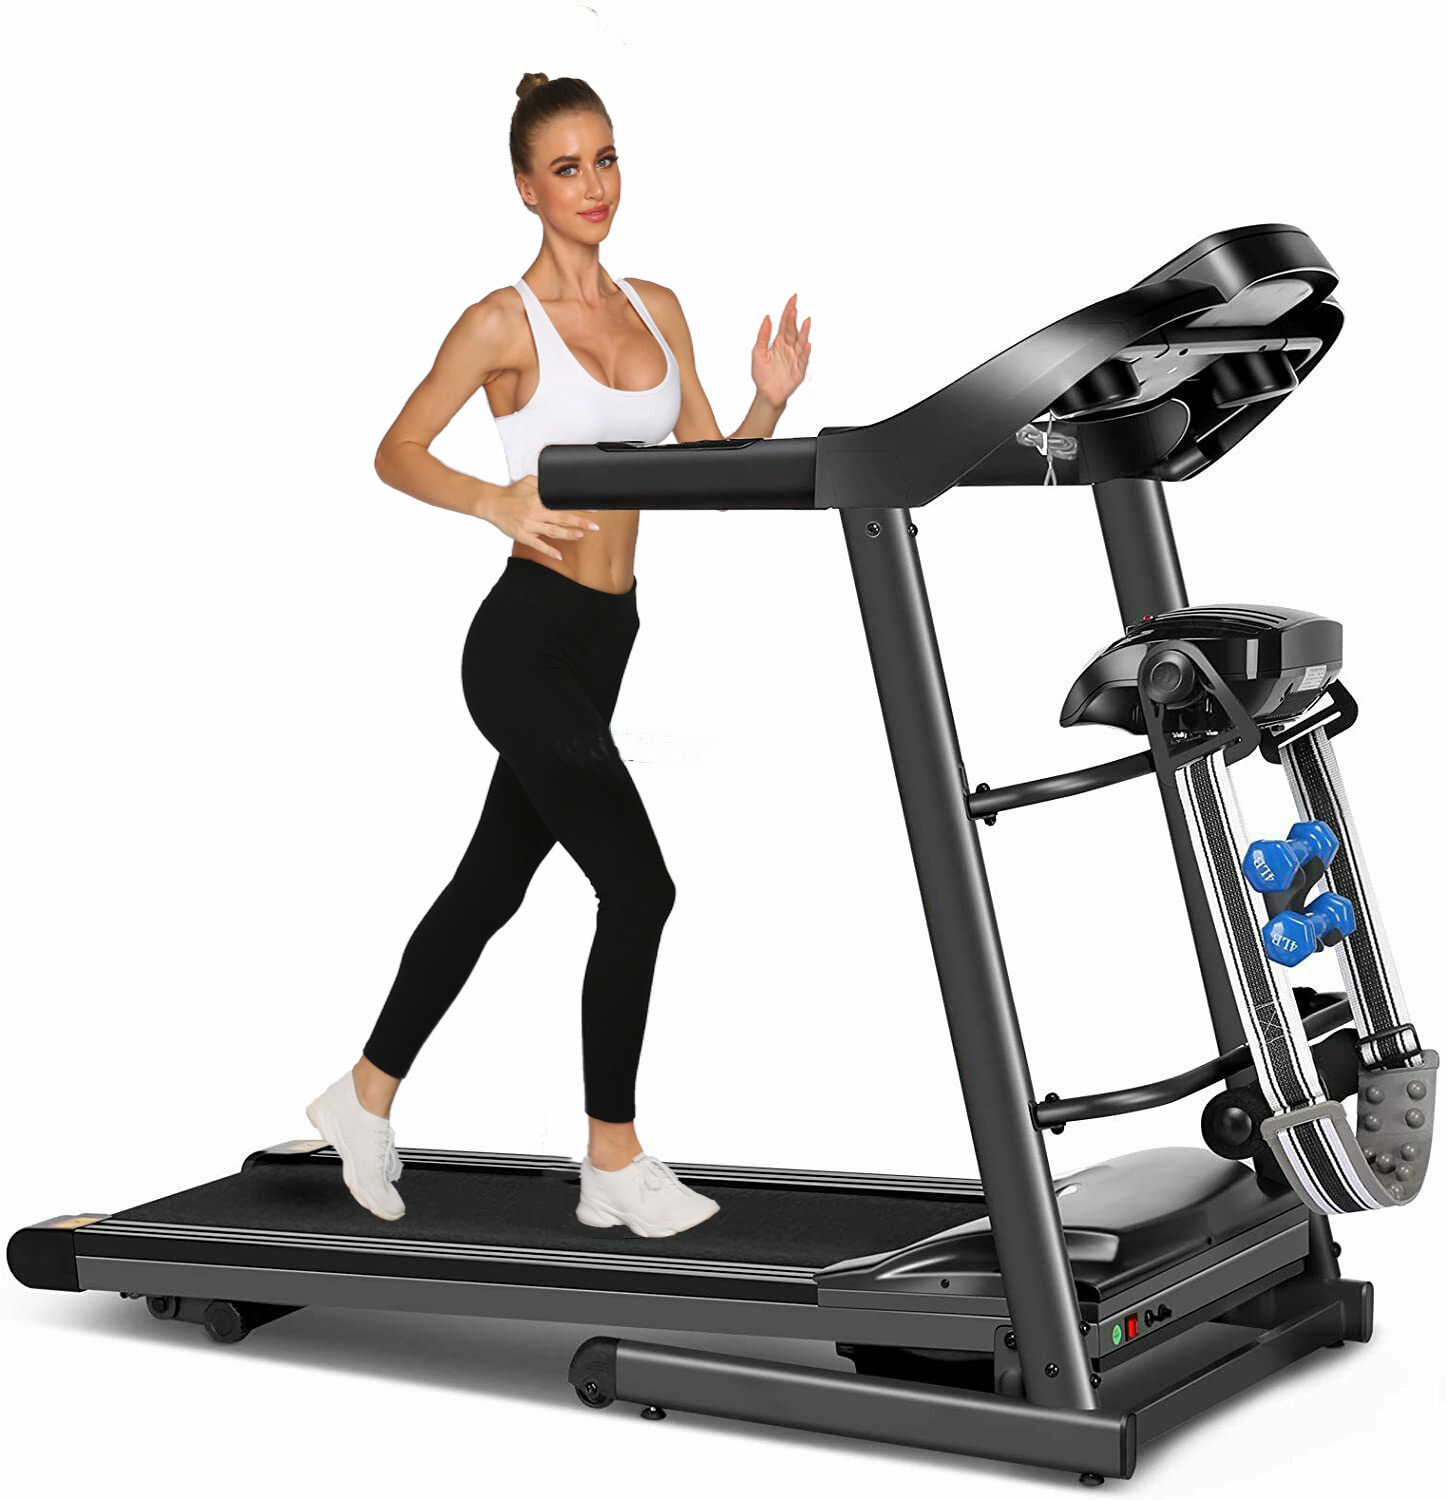 sytiry Multifunctional Treadmill Suitable for Home/Office/Gym ...